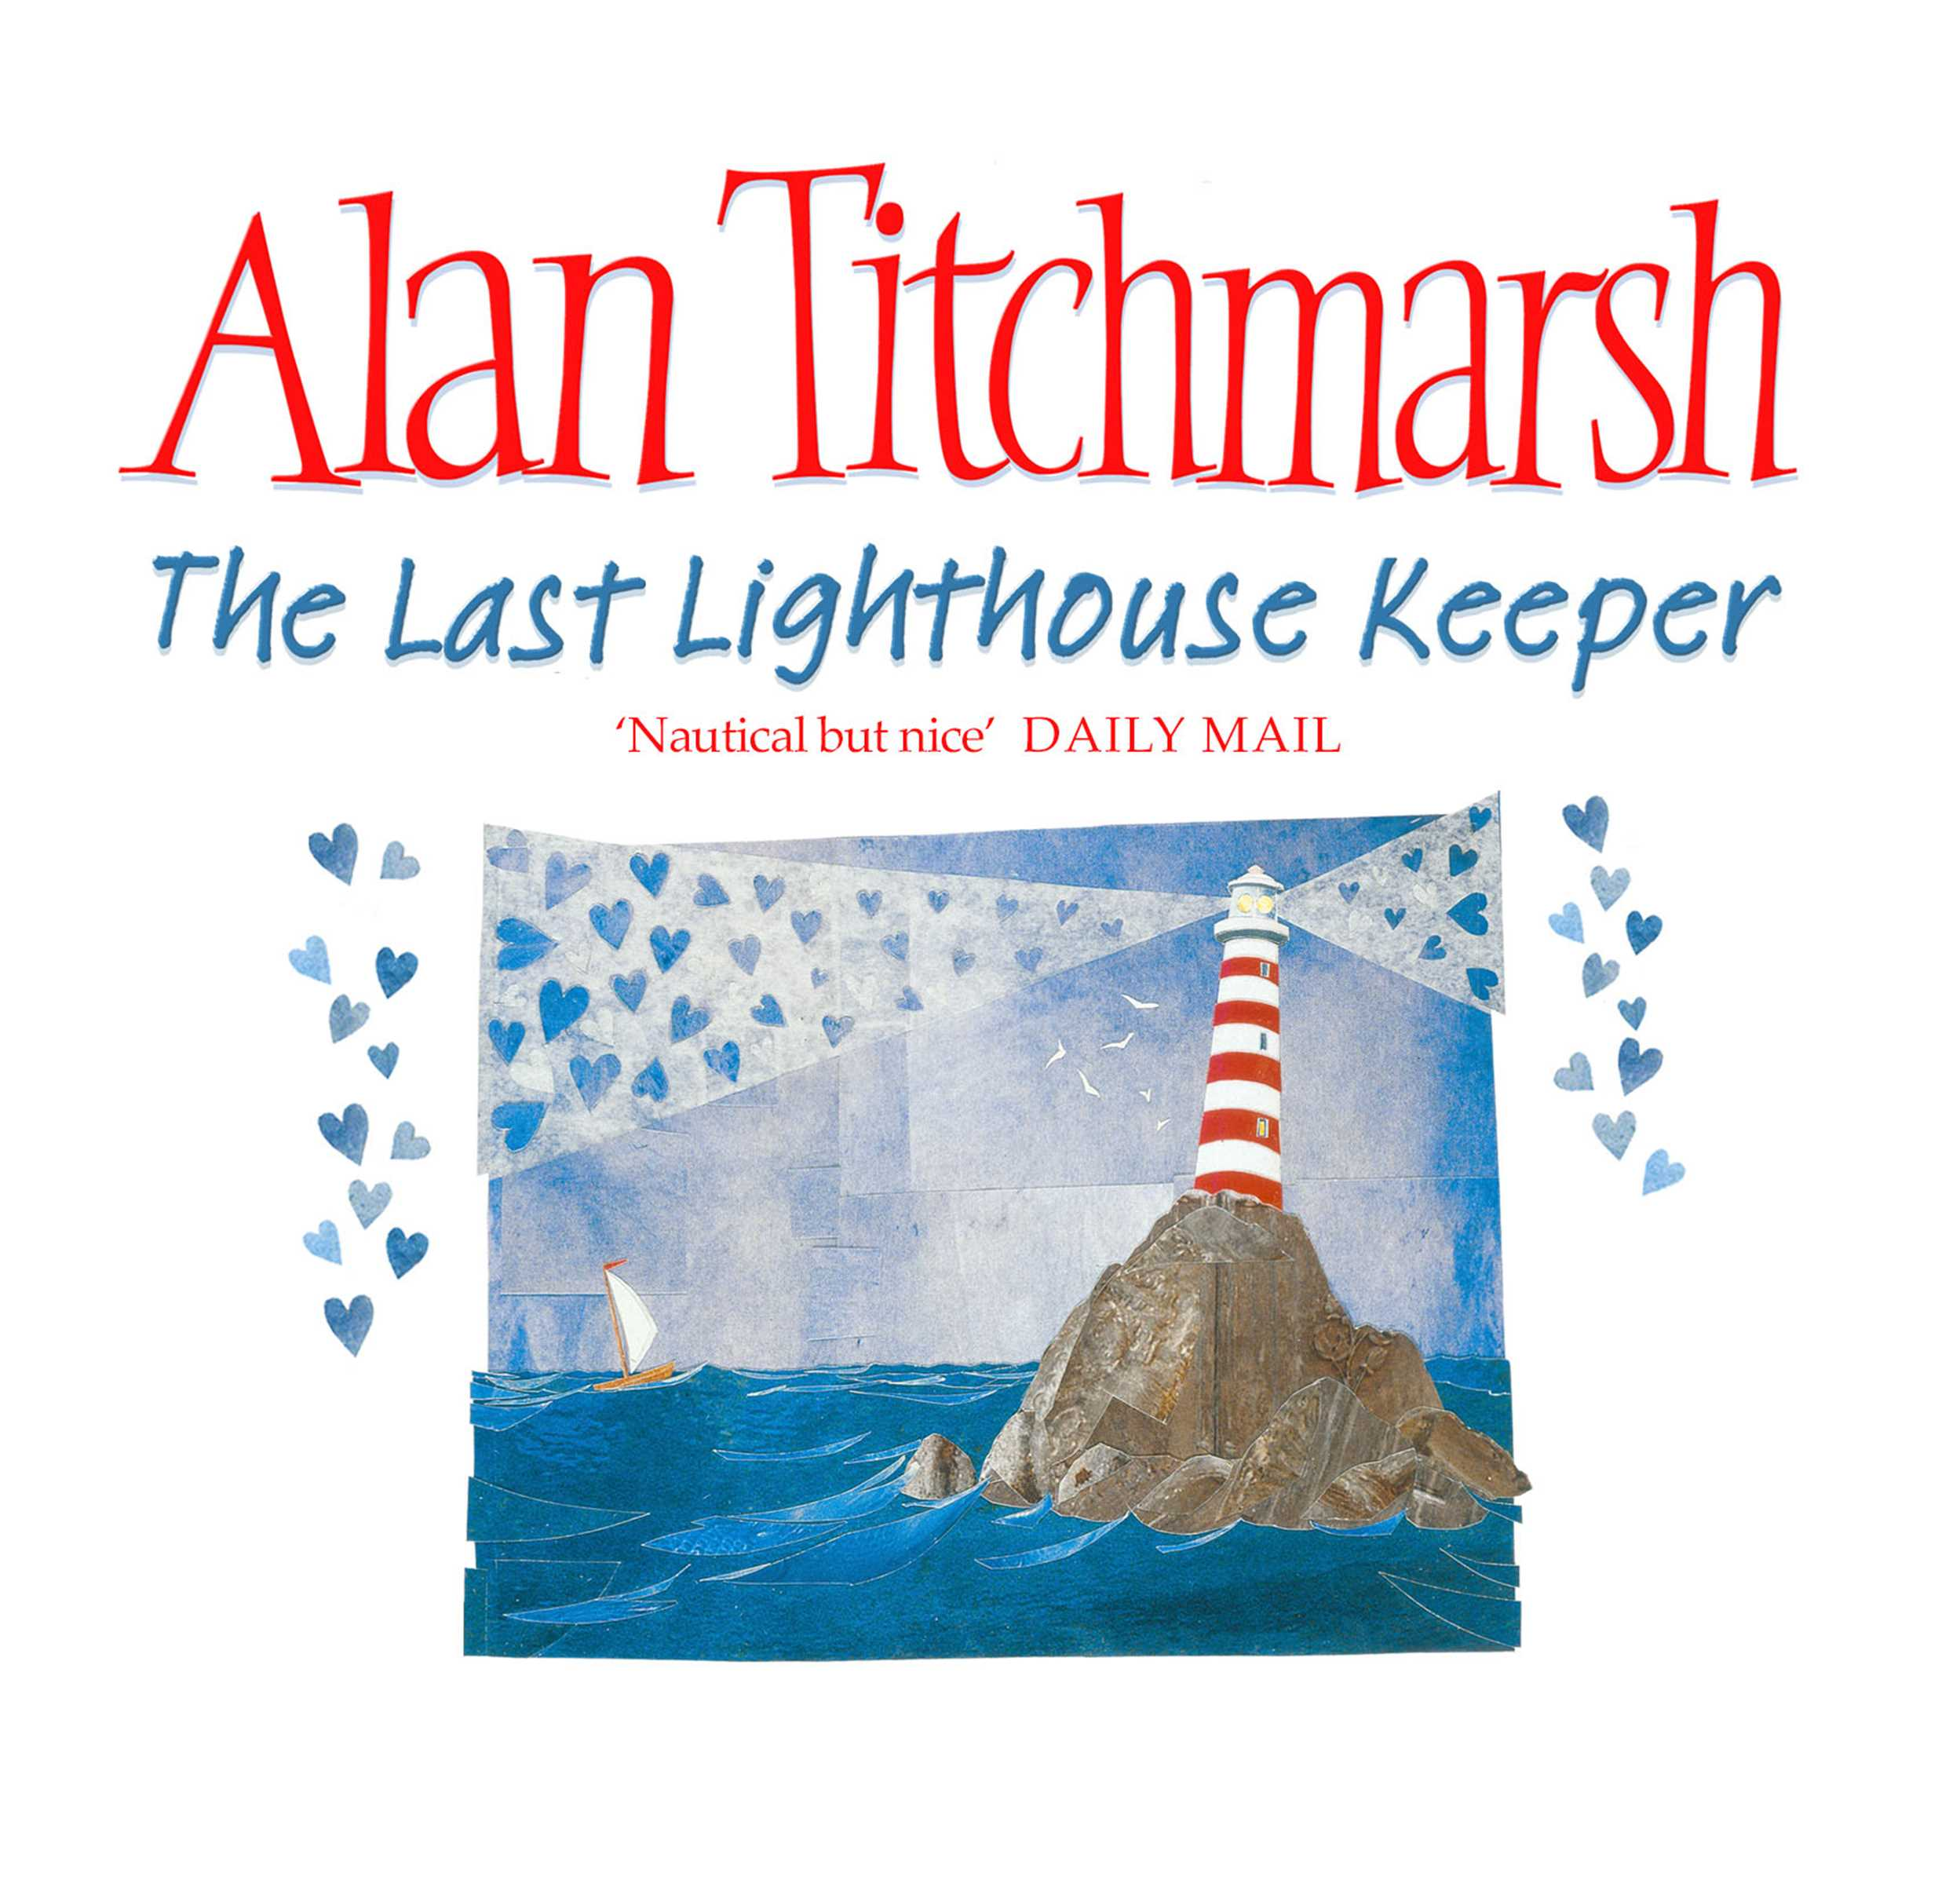 The Last Lighthouse Keeper Audiobook by Alan Titchmarsh, the